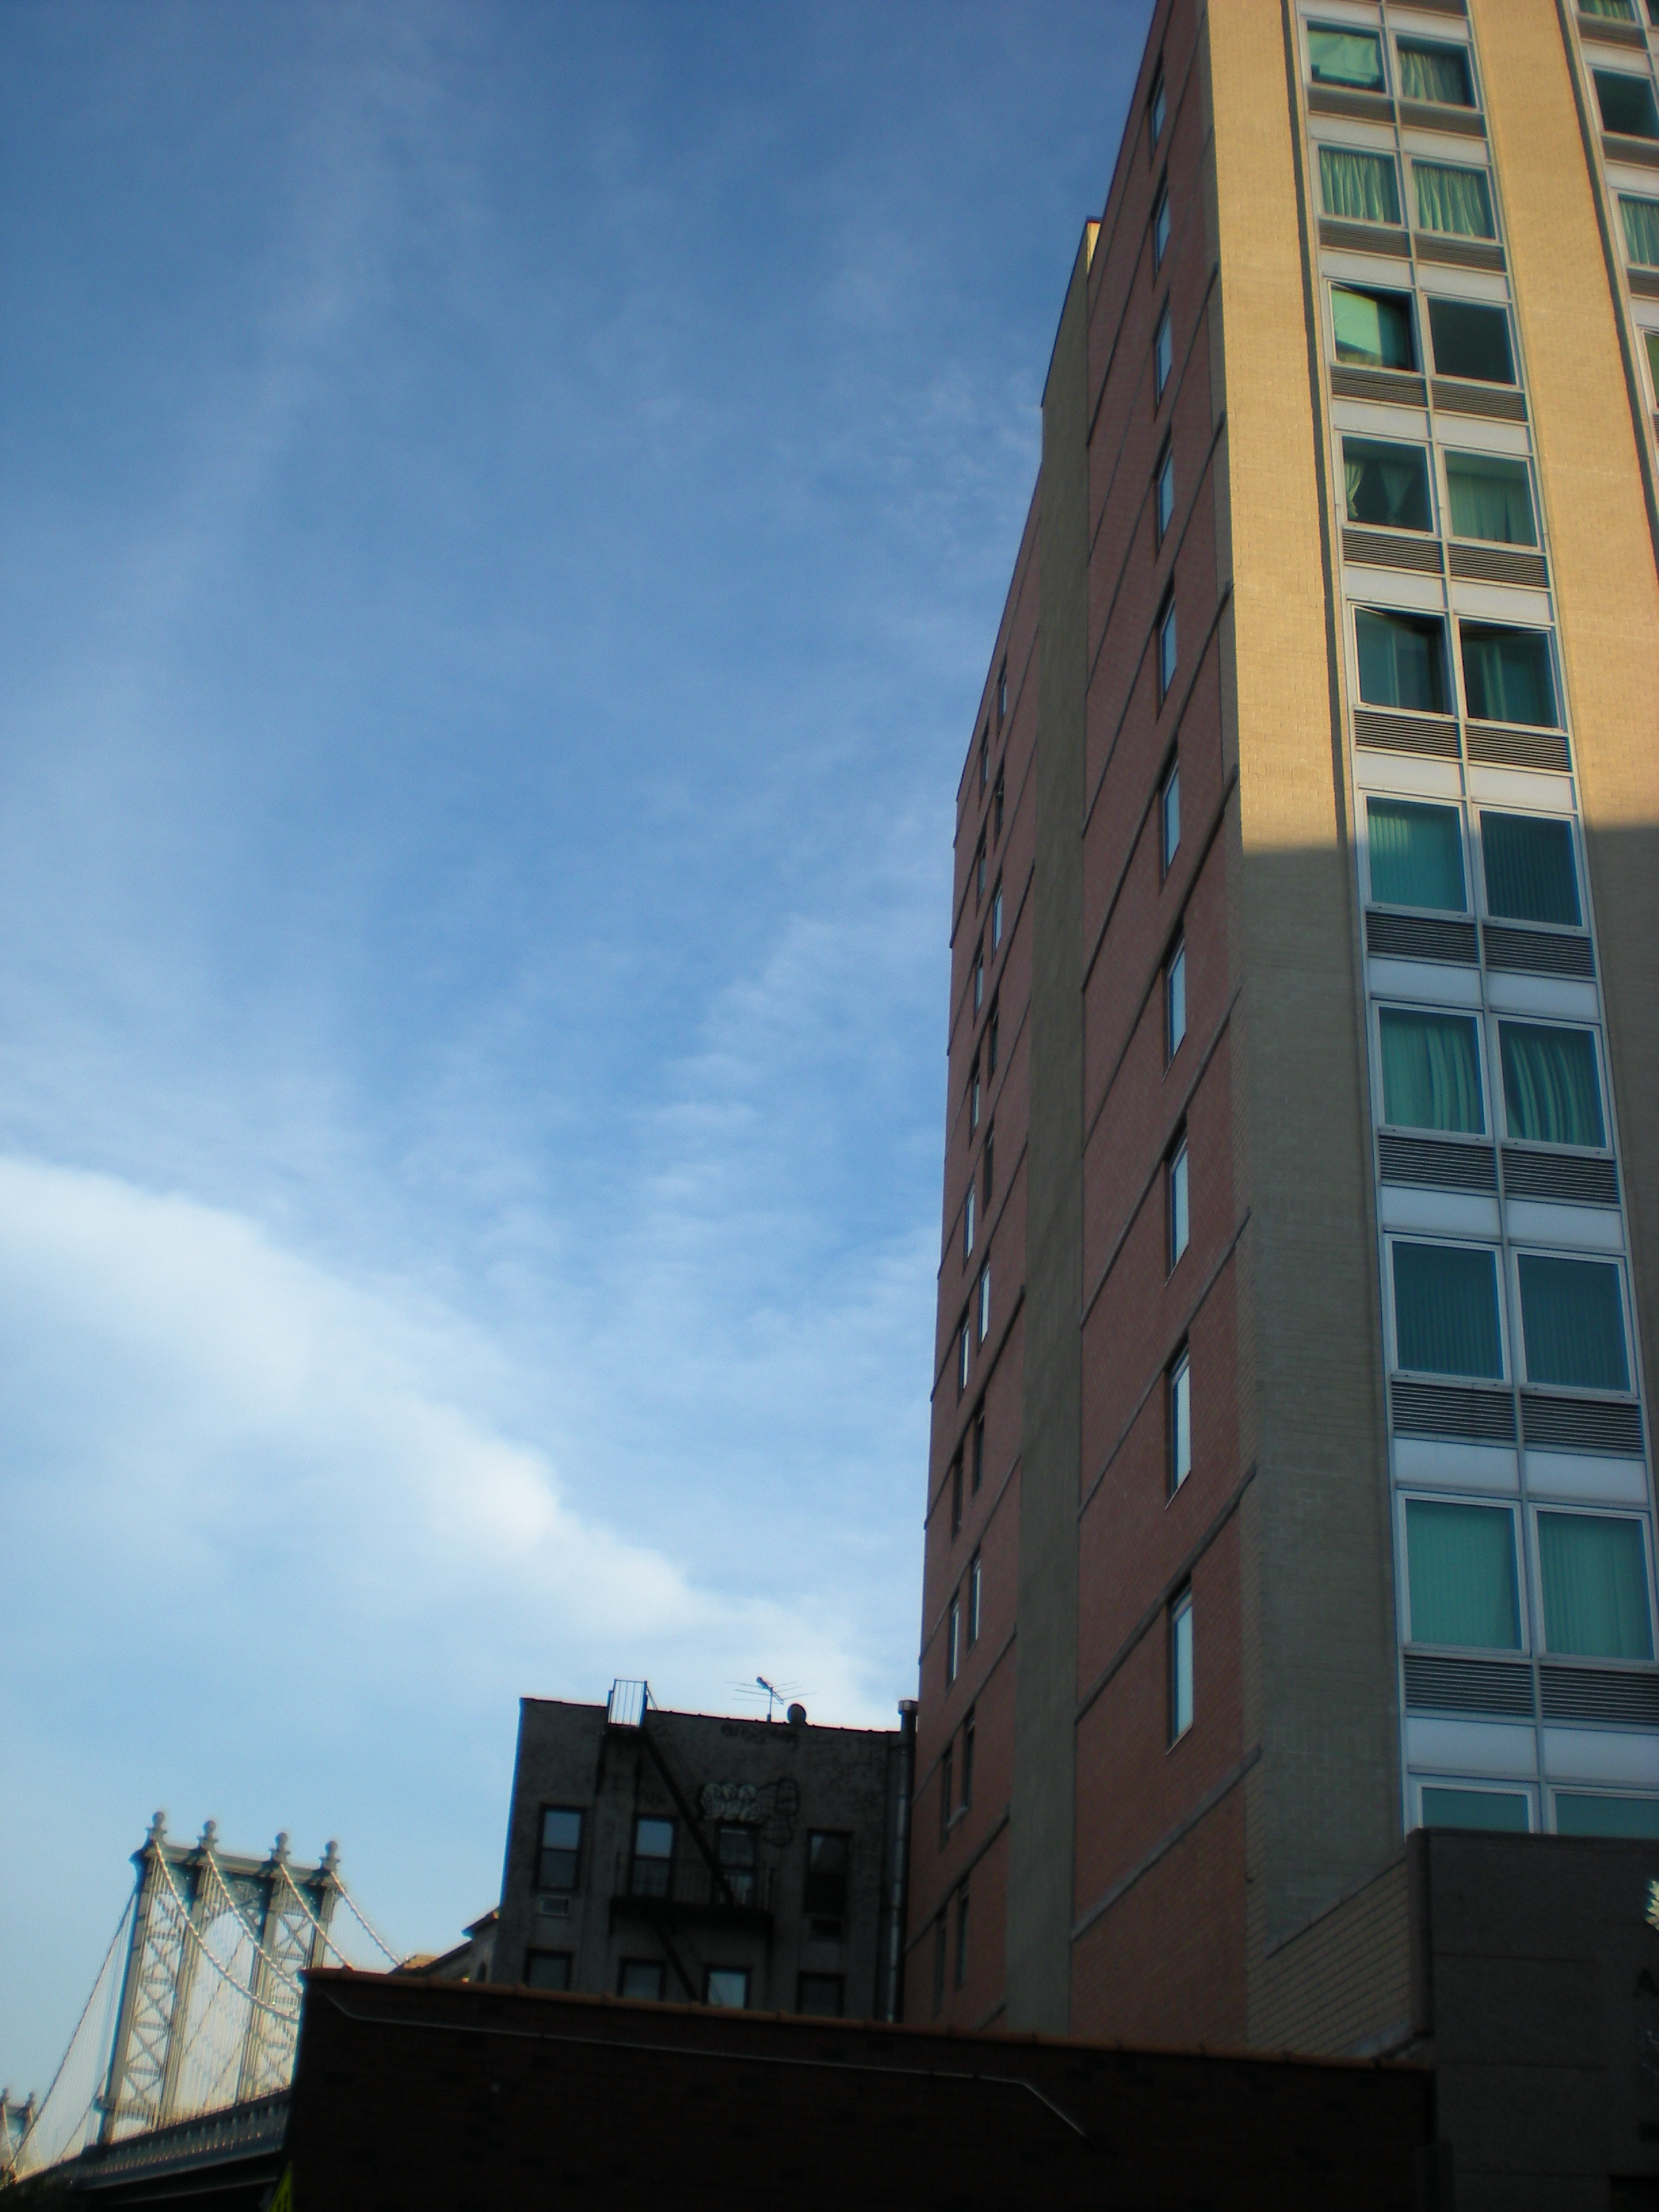 nyc-late july 2010 078.jpg